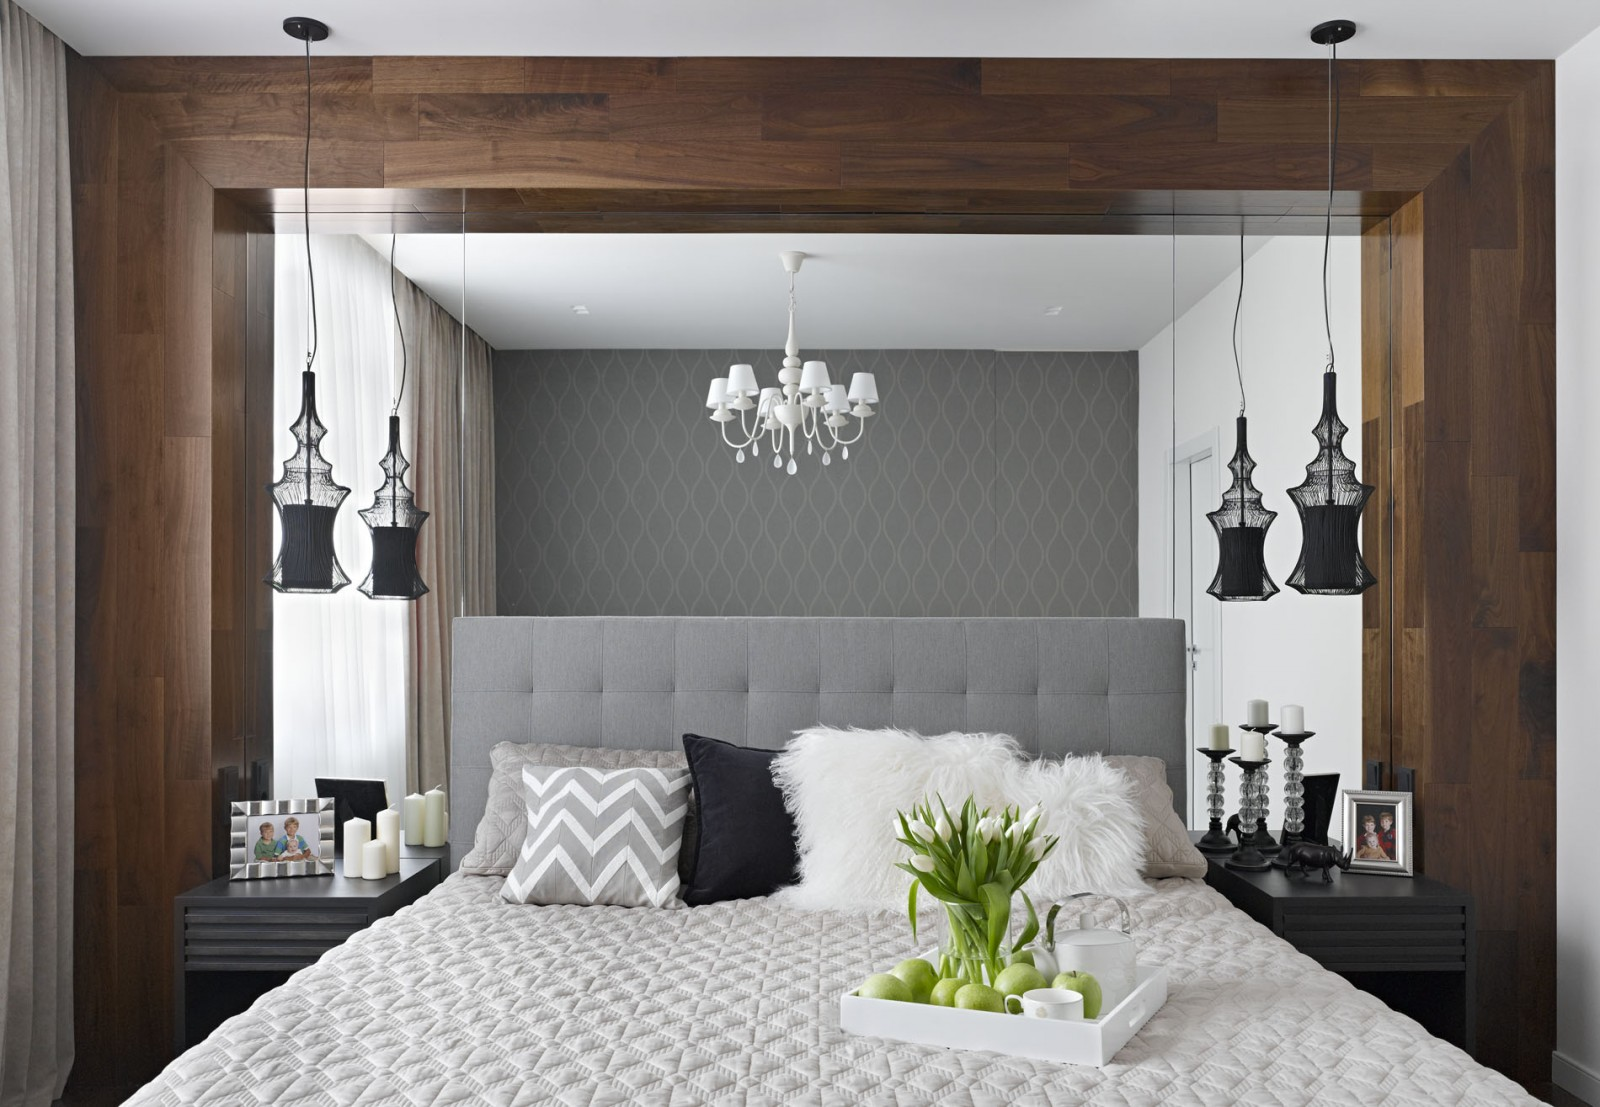 20 Small Bedroom Ideas That Will Leave You Speechless - Architecture ...